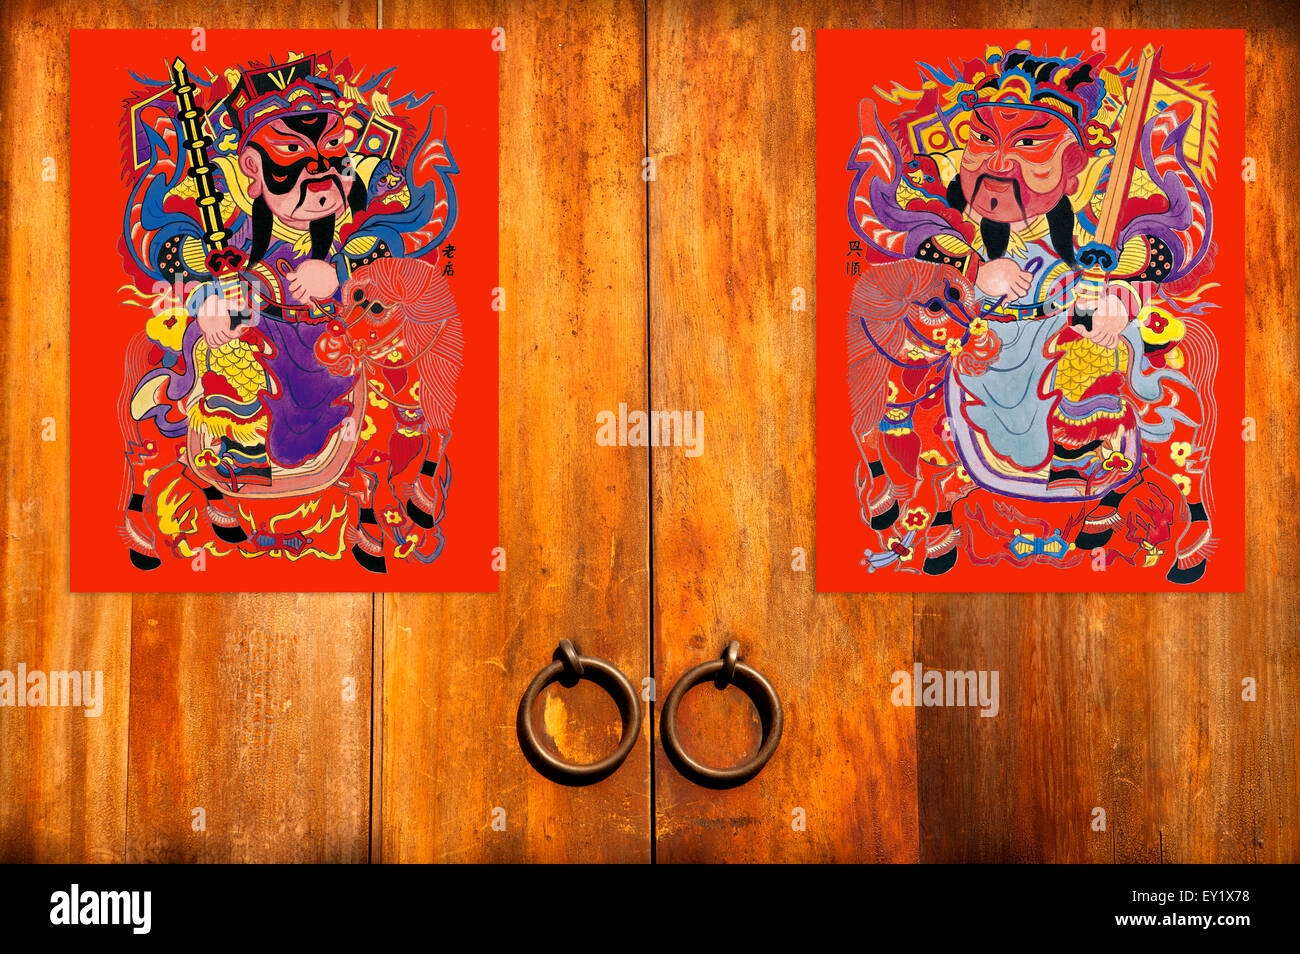 Chinese Door God Luck Chinese Money God  sc 1 st  Alamy & Chinese Door God Luck Chinese Money God Stock Photo: 85479724 - Alamy